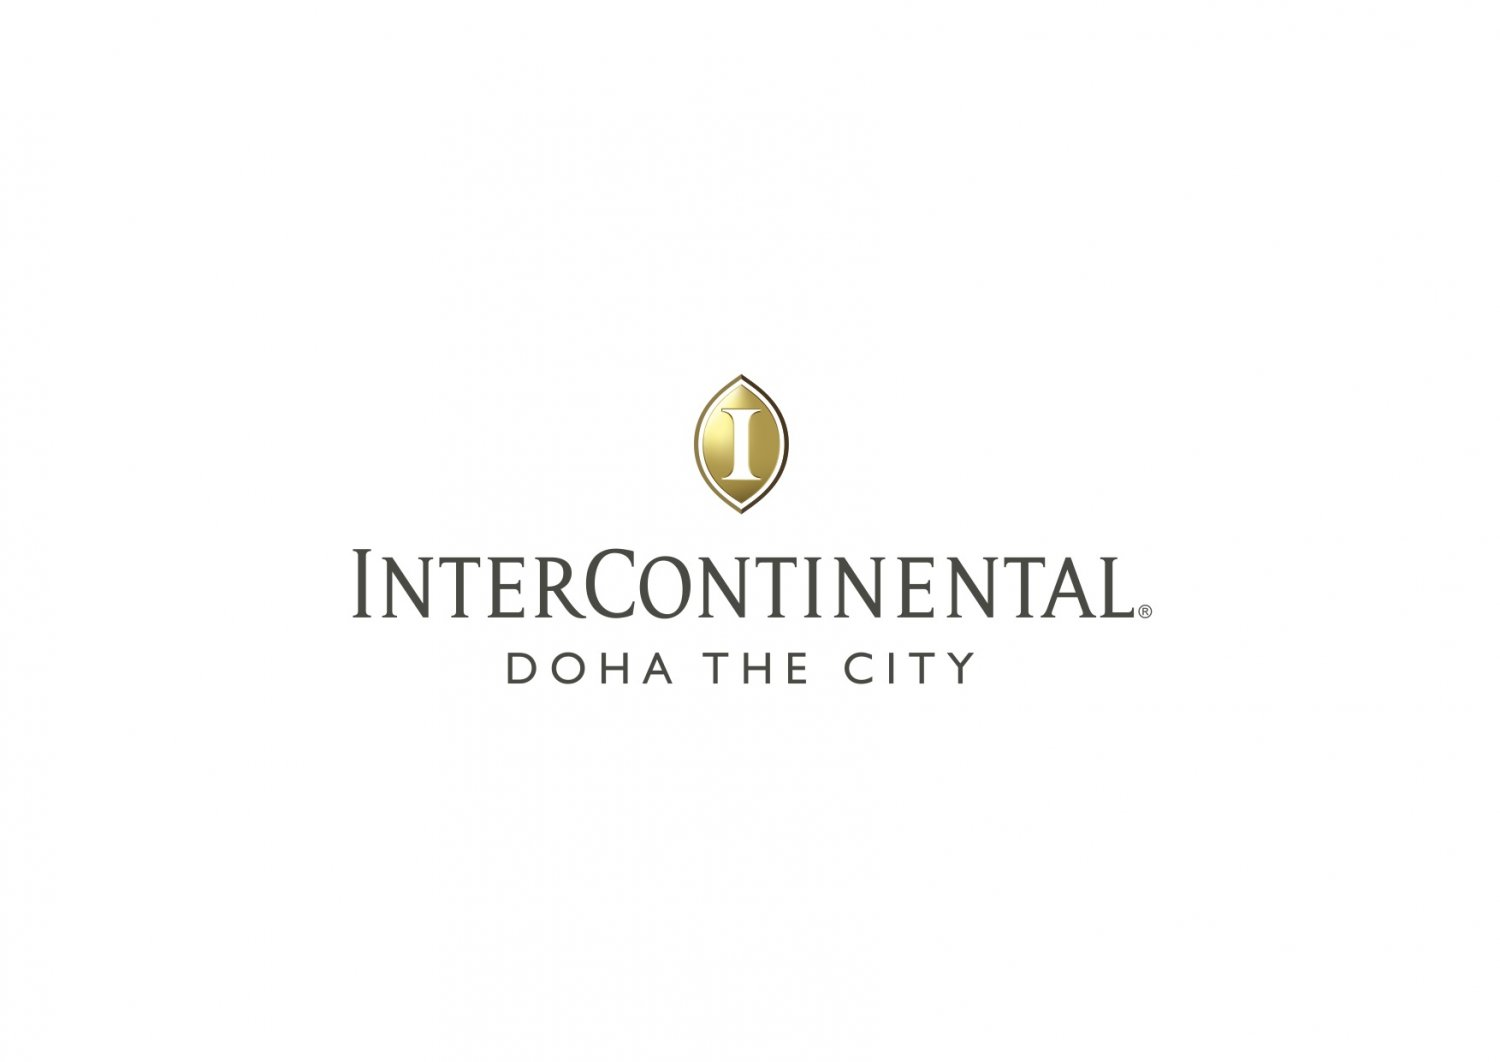 Intercontinental city